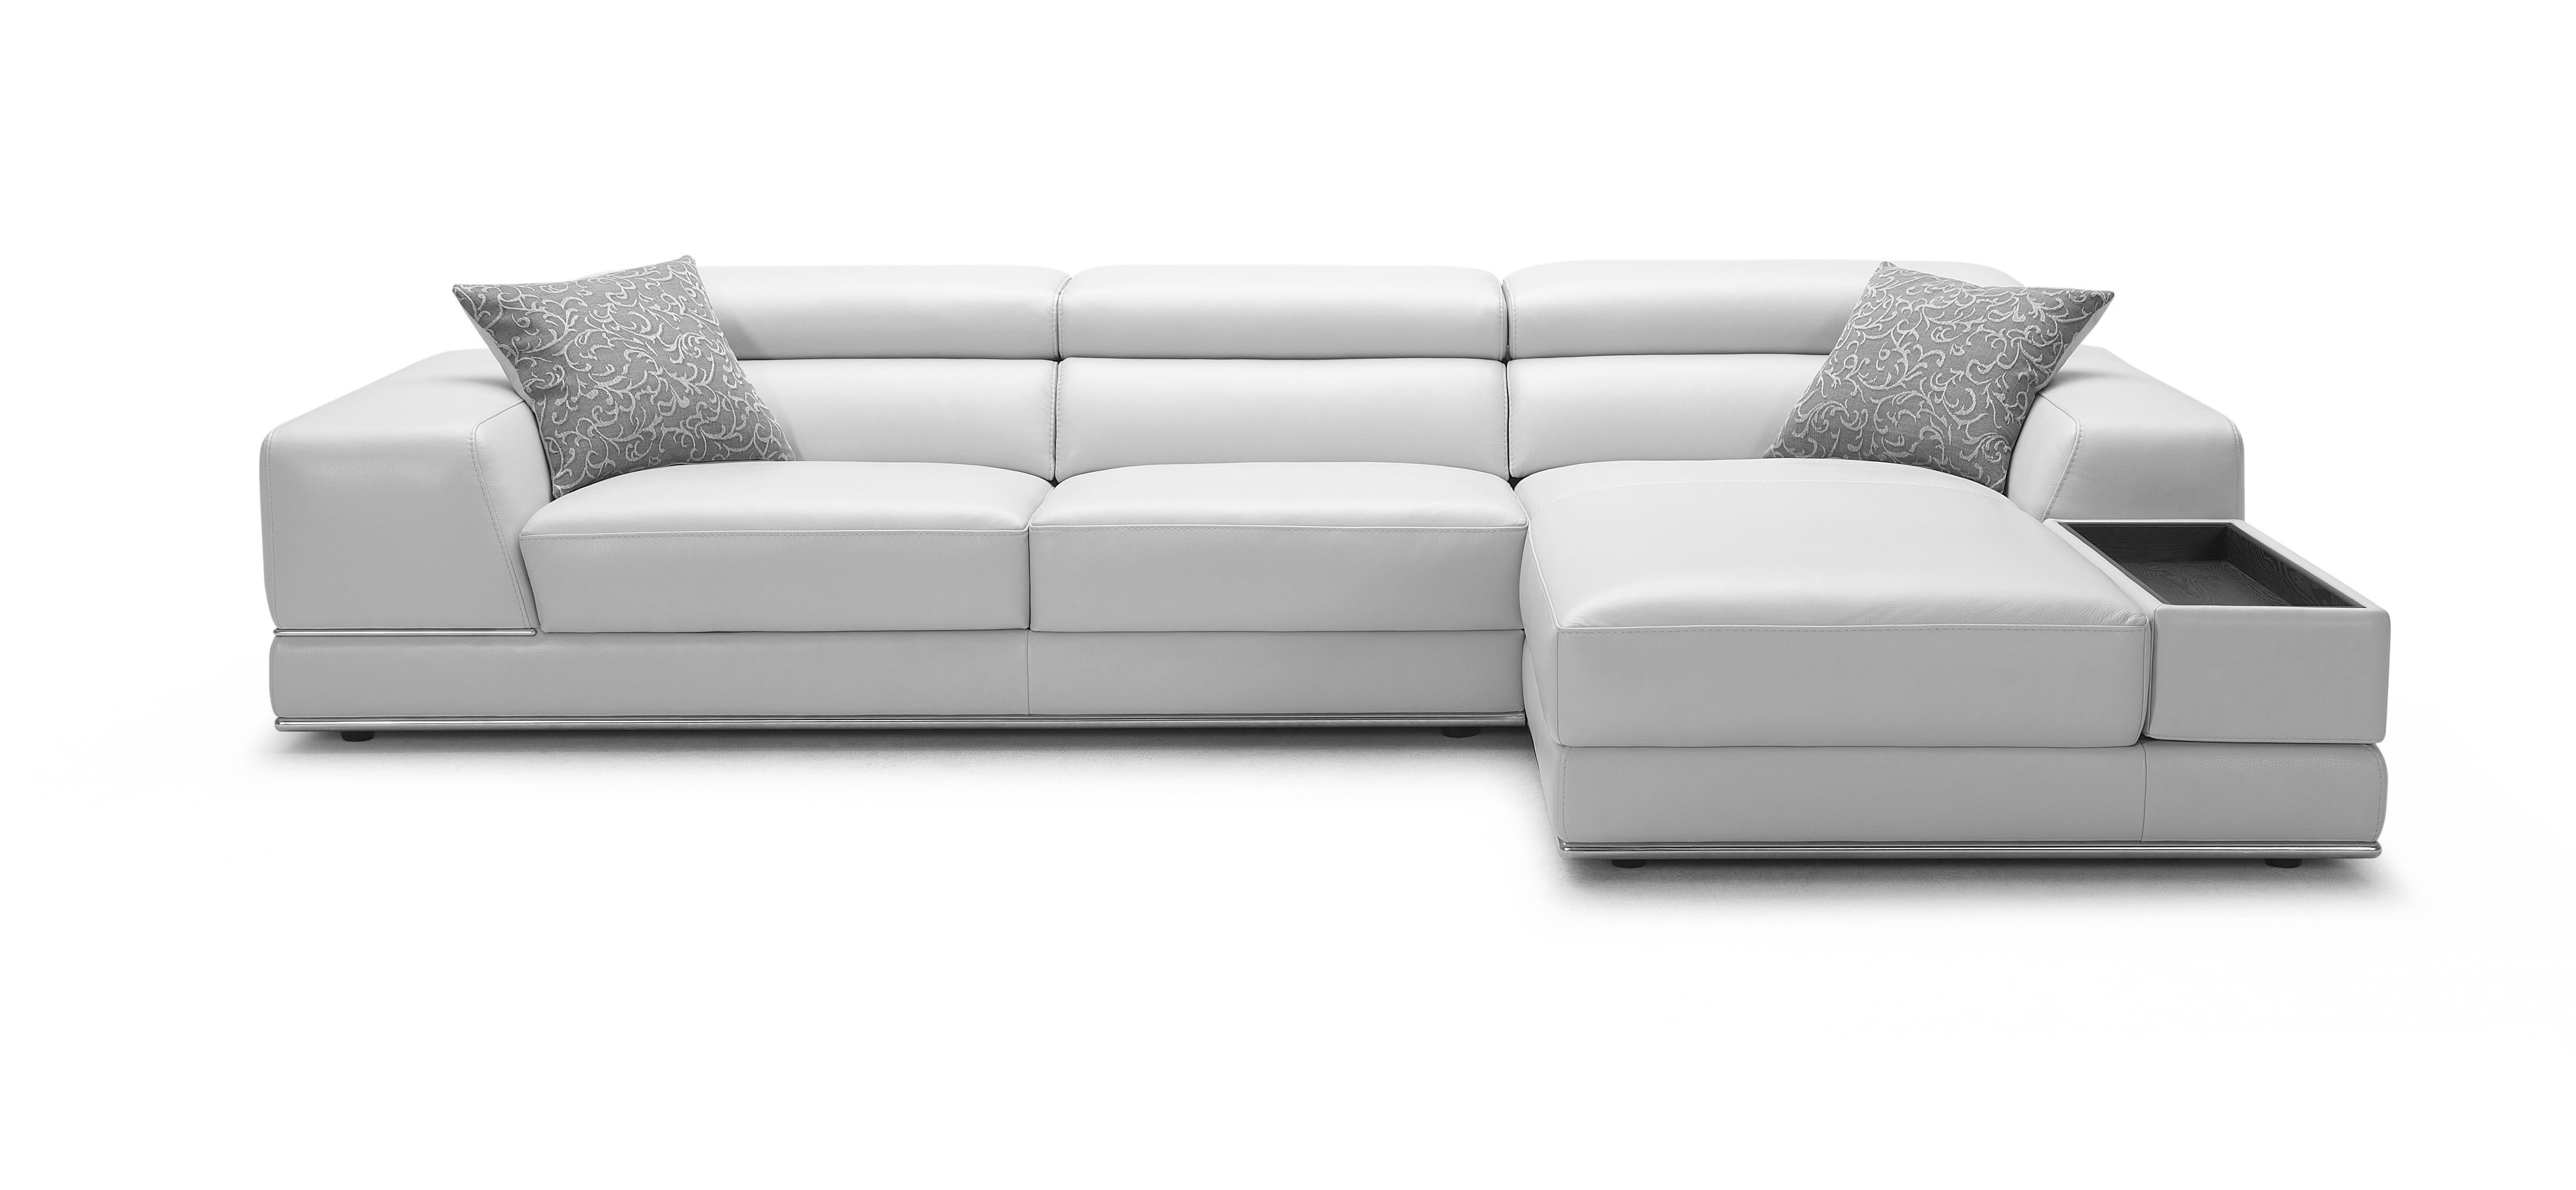 new reclining sectional sofas wallpaper-Finest Reclining Sectional sofas Layout